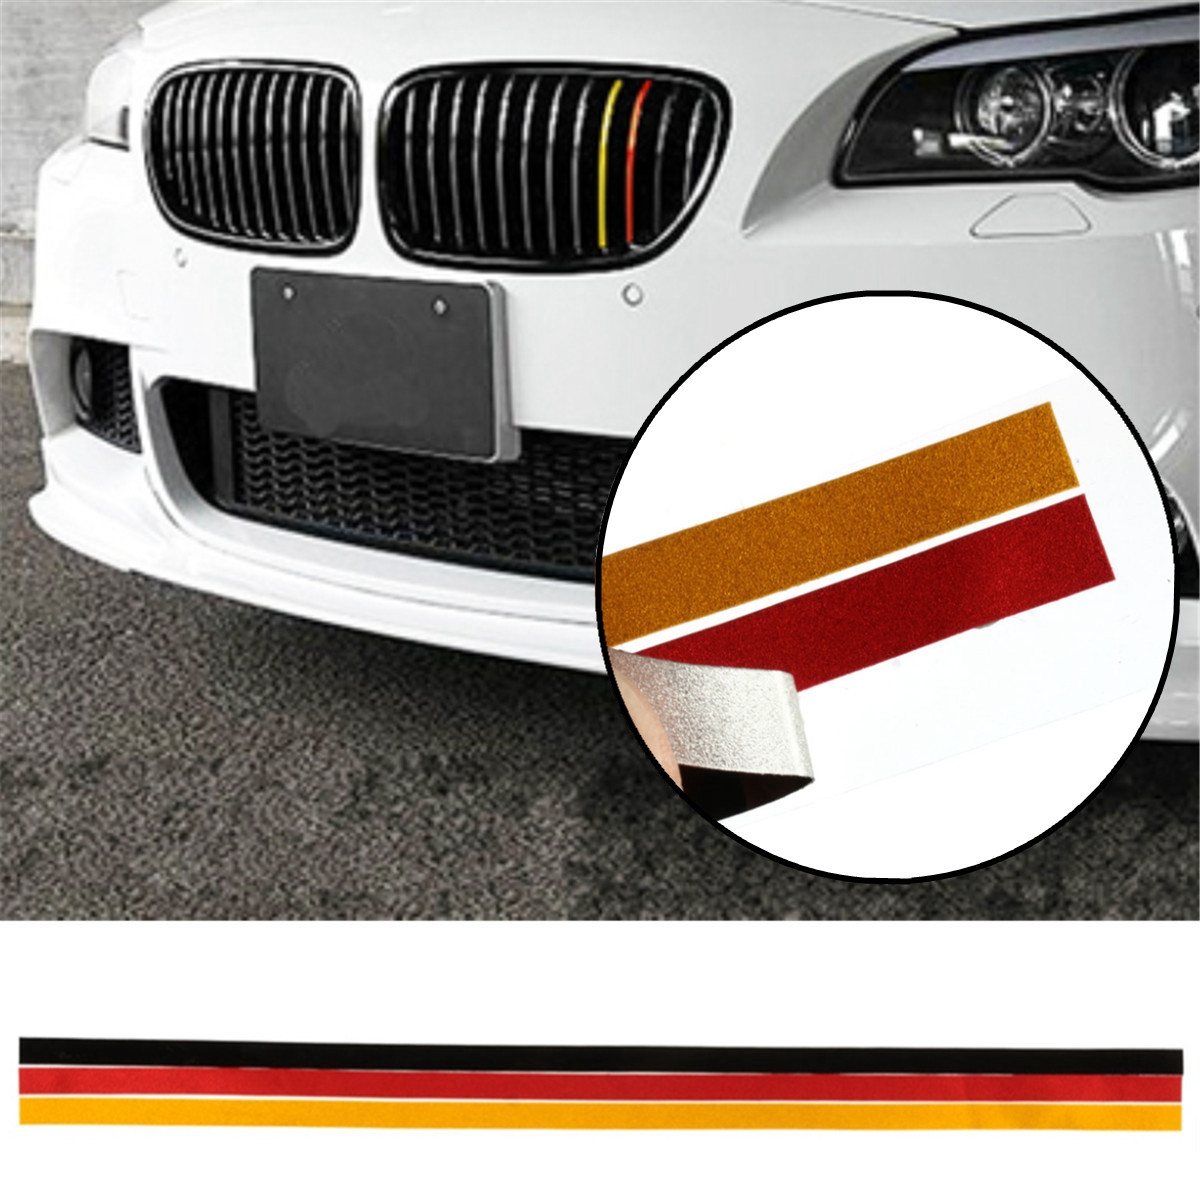 German Flag M-Sport Grille Grill Vinyl Strip Sticker Decal For BMW /M3 /M5 /E46 /E90